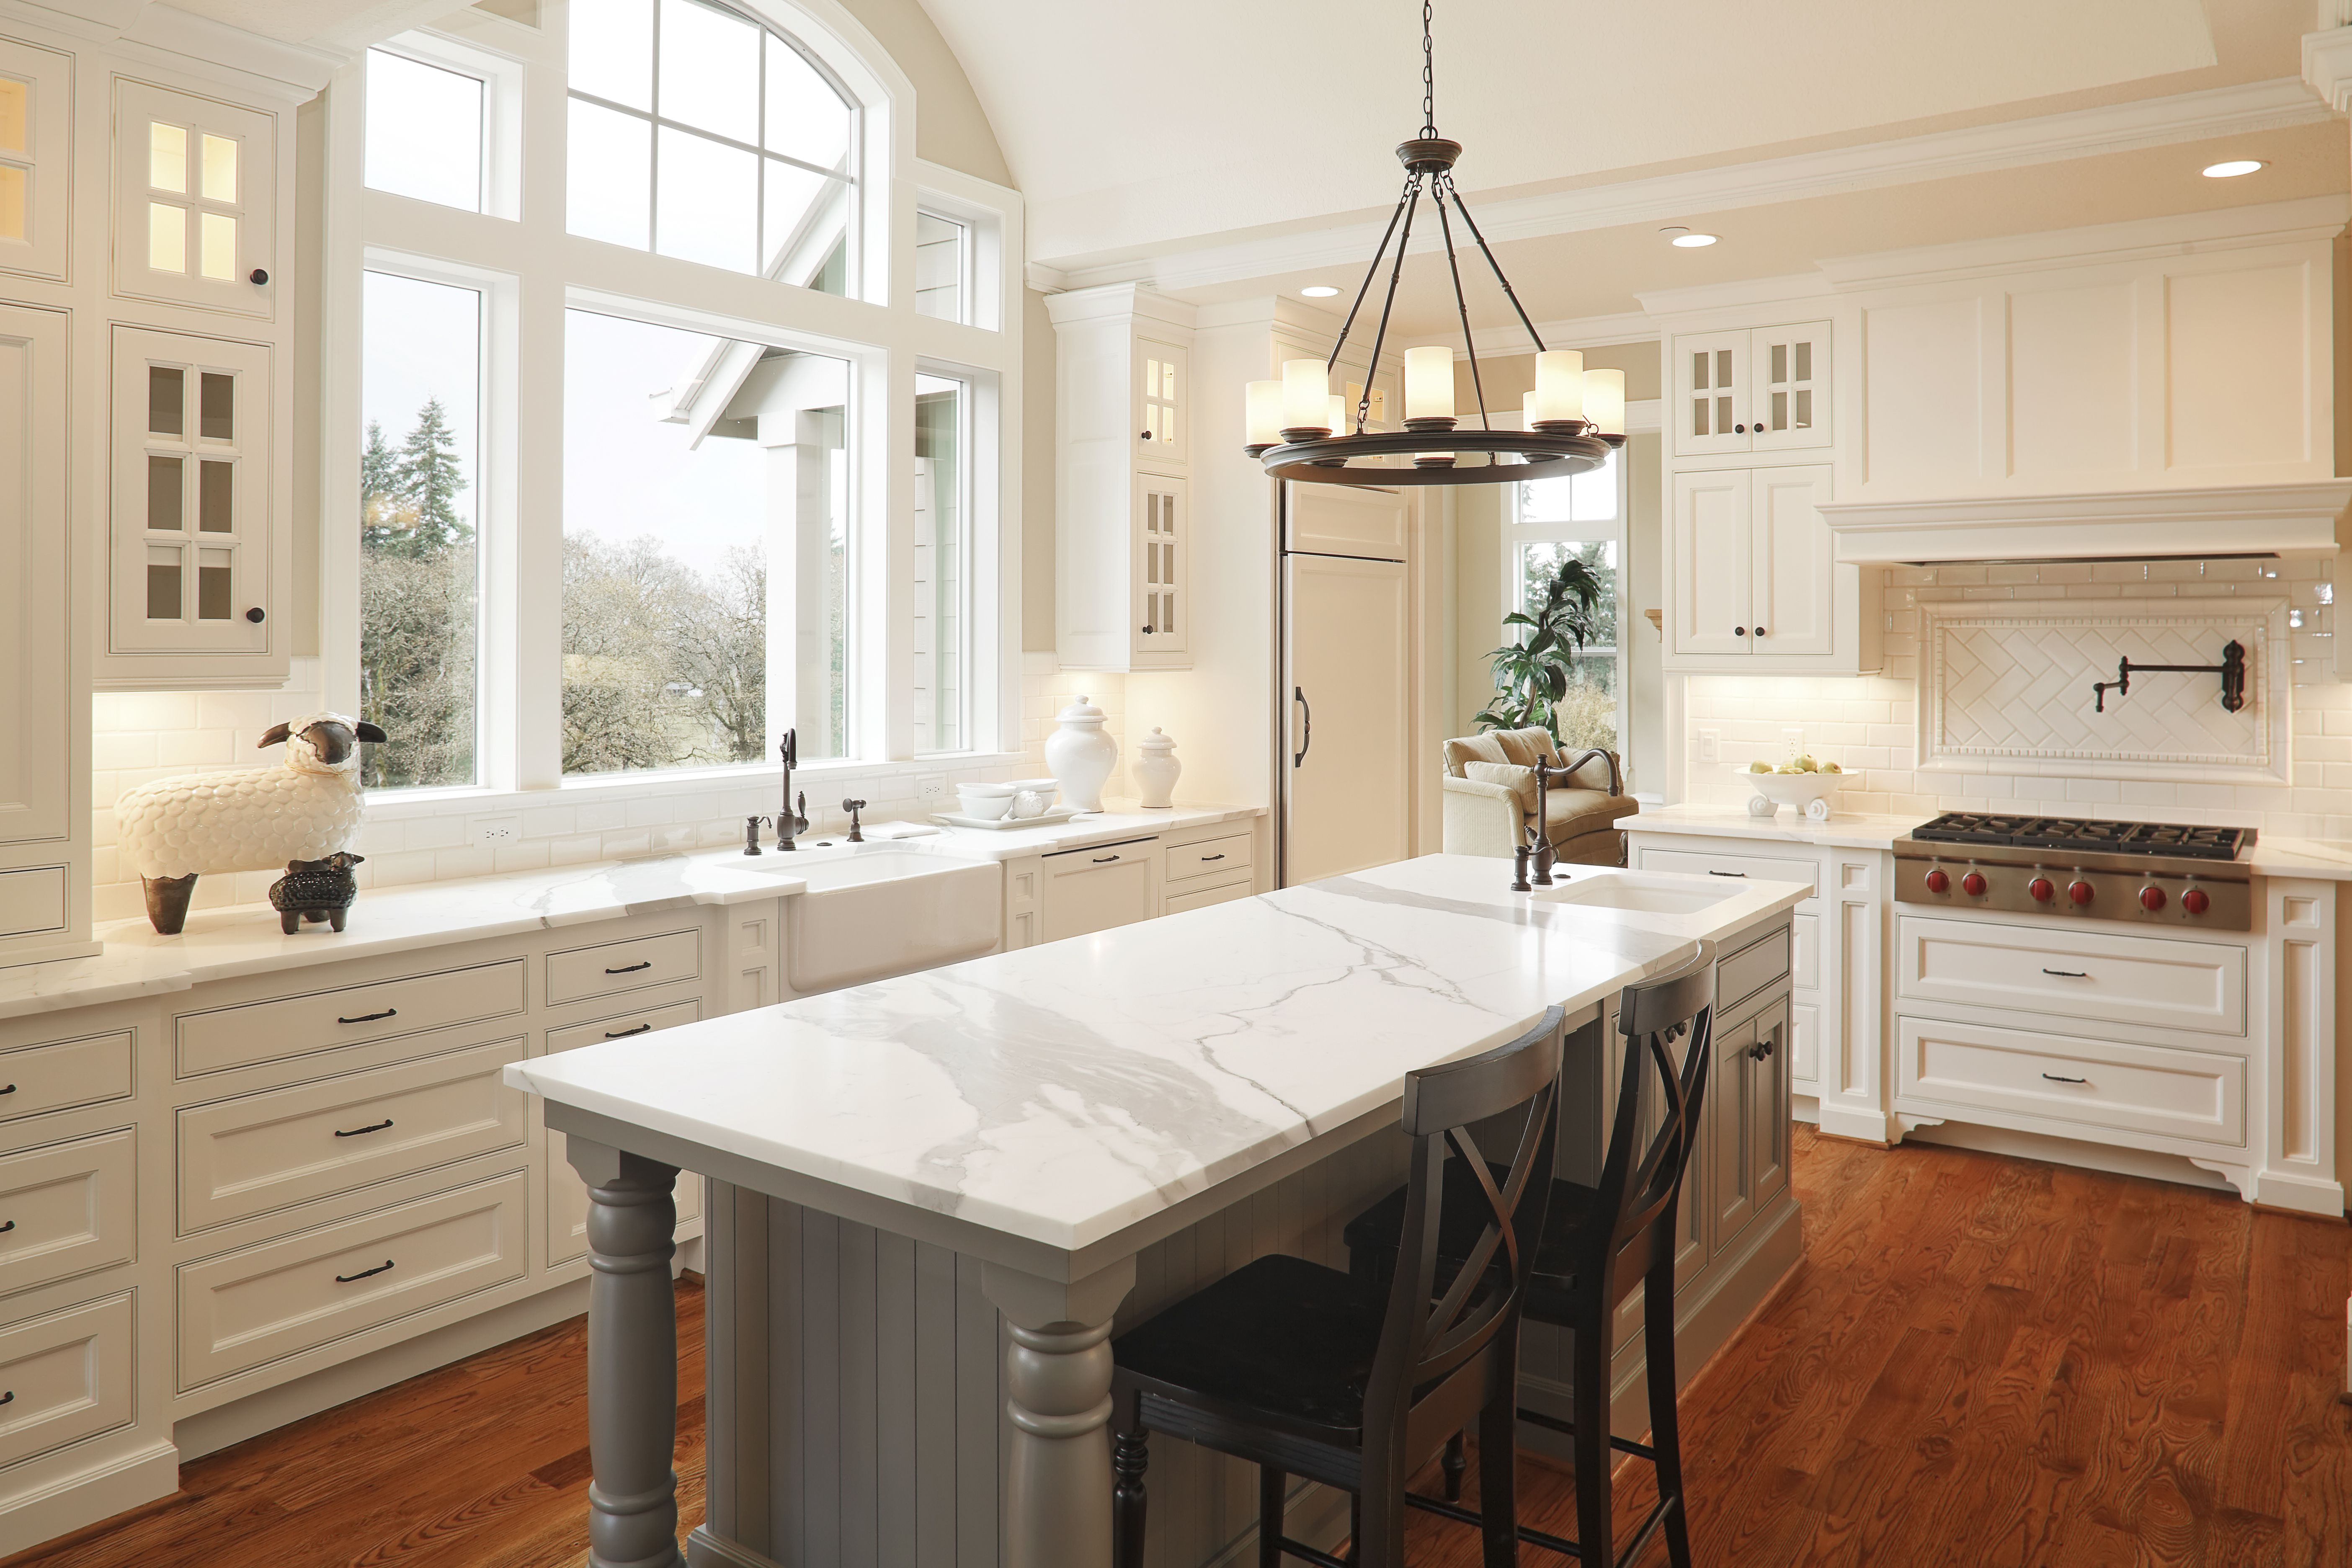 Two Toned Kitchen Cabinets with Quartz Counters and Farmhouse Sink